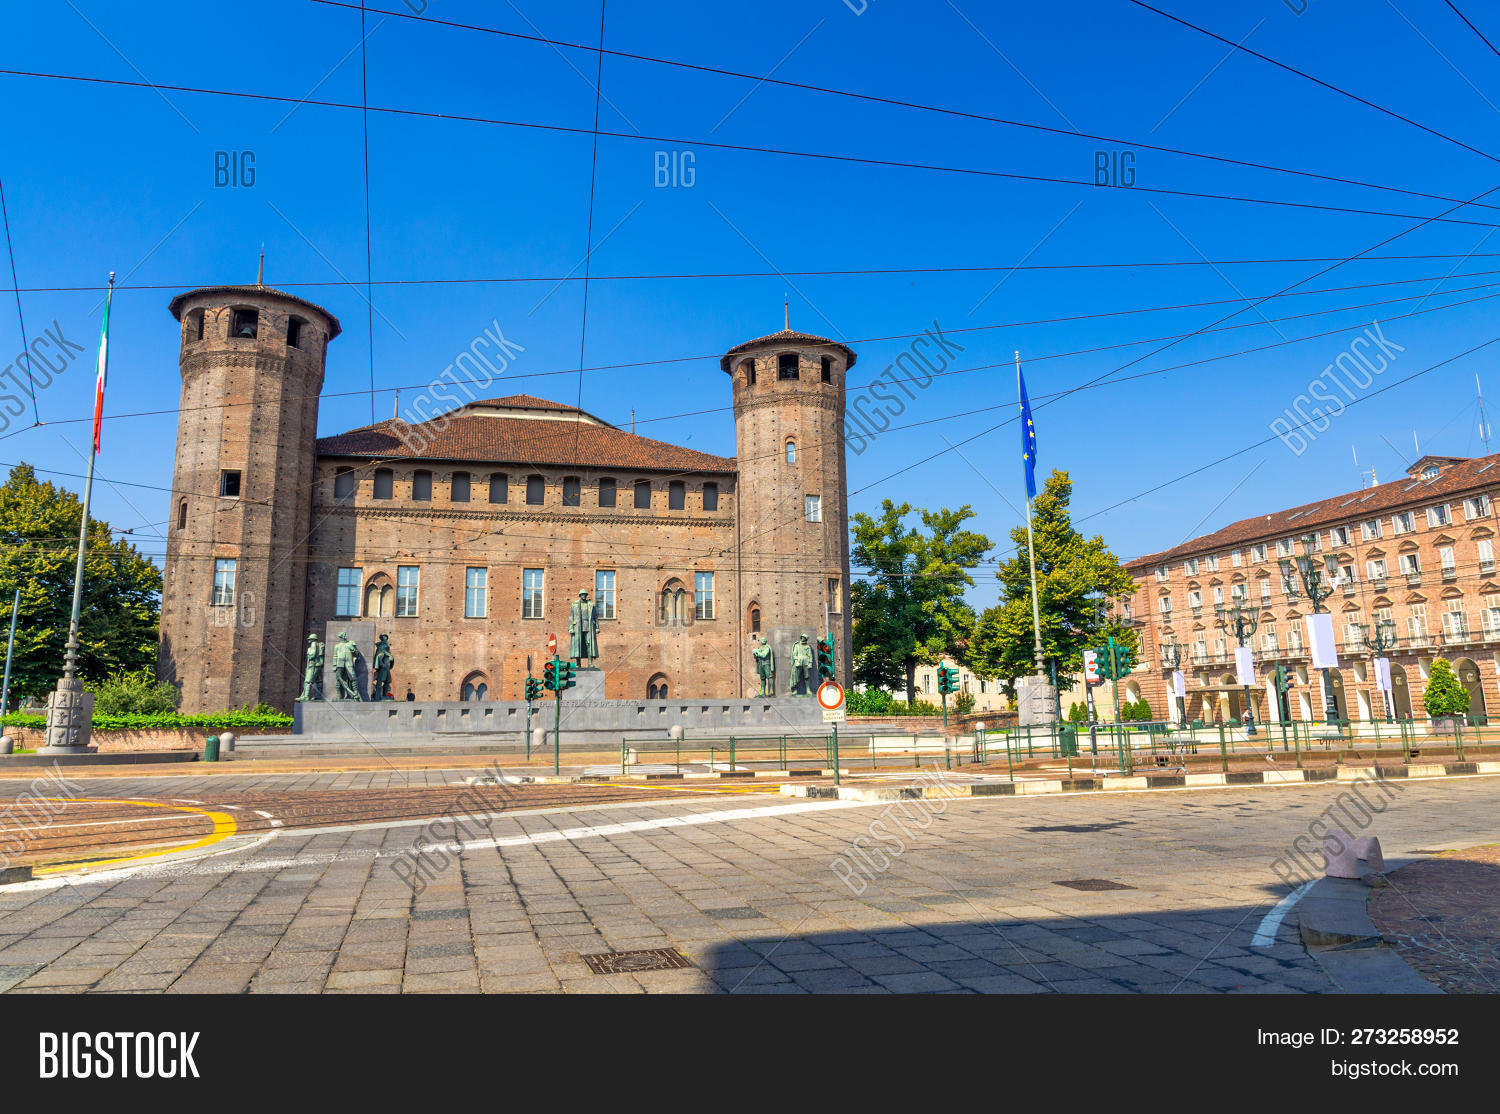 acaja,ancient,architectural,architecture,blue,bronze,building,capital,casaforte,castello,castle,center,city,day,emanuele,europe,famous,filiberto,first,heritage,historic,italia,italian,italy,landmark,madama,medieval,monument,old,palace,palazzo,piazza,piedmont,piemonte,royal,site,sky,square,statue,torino,tourism,tower,town,travel,turin,unesco,urban,vacation,view,world